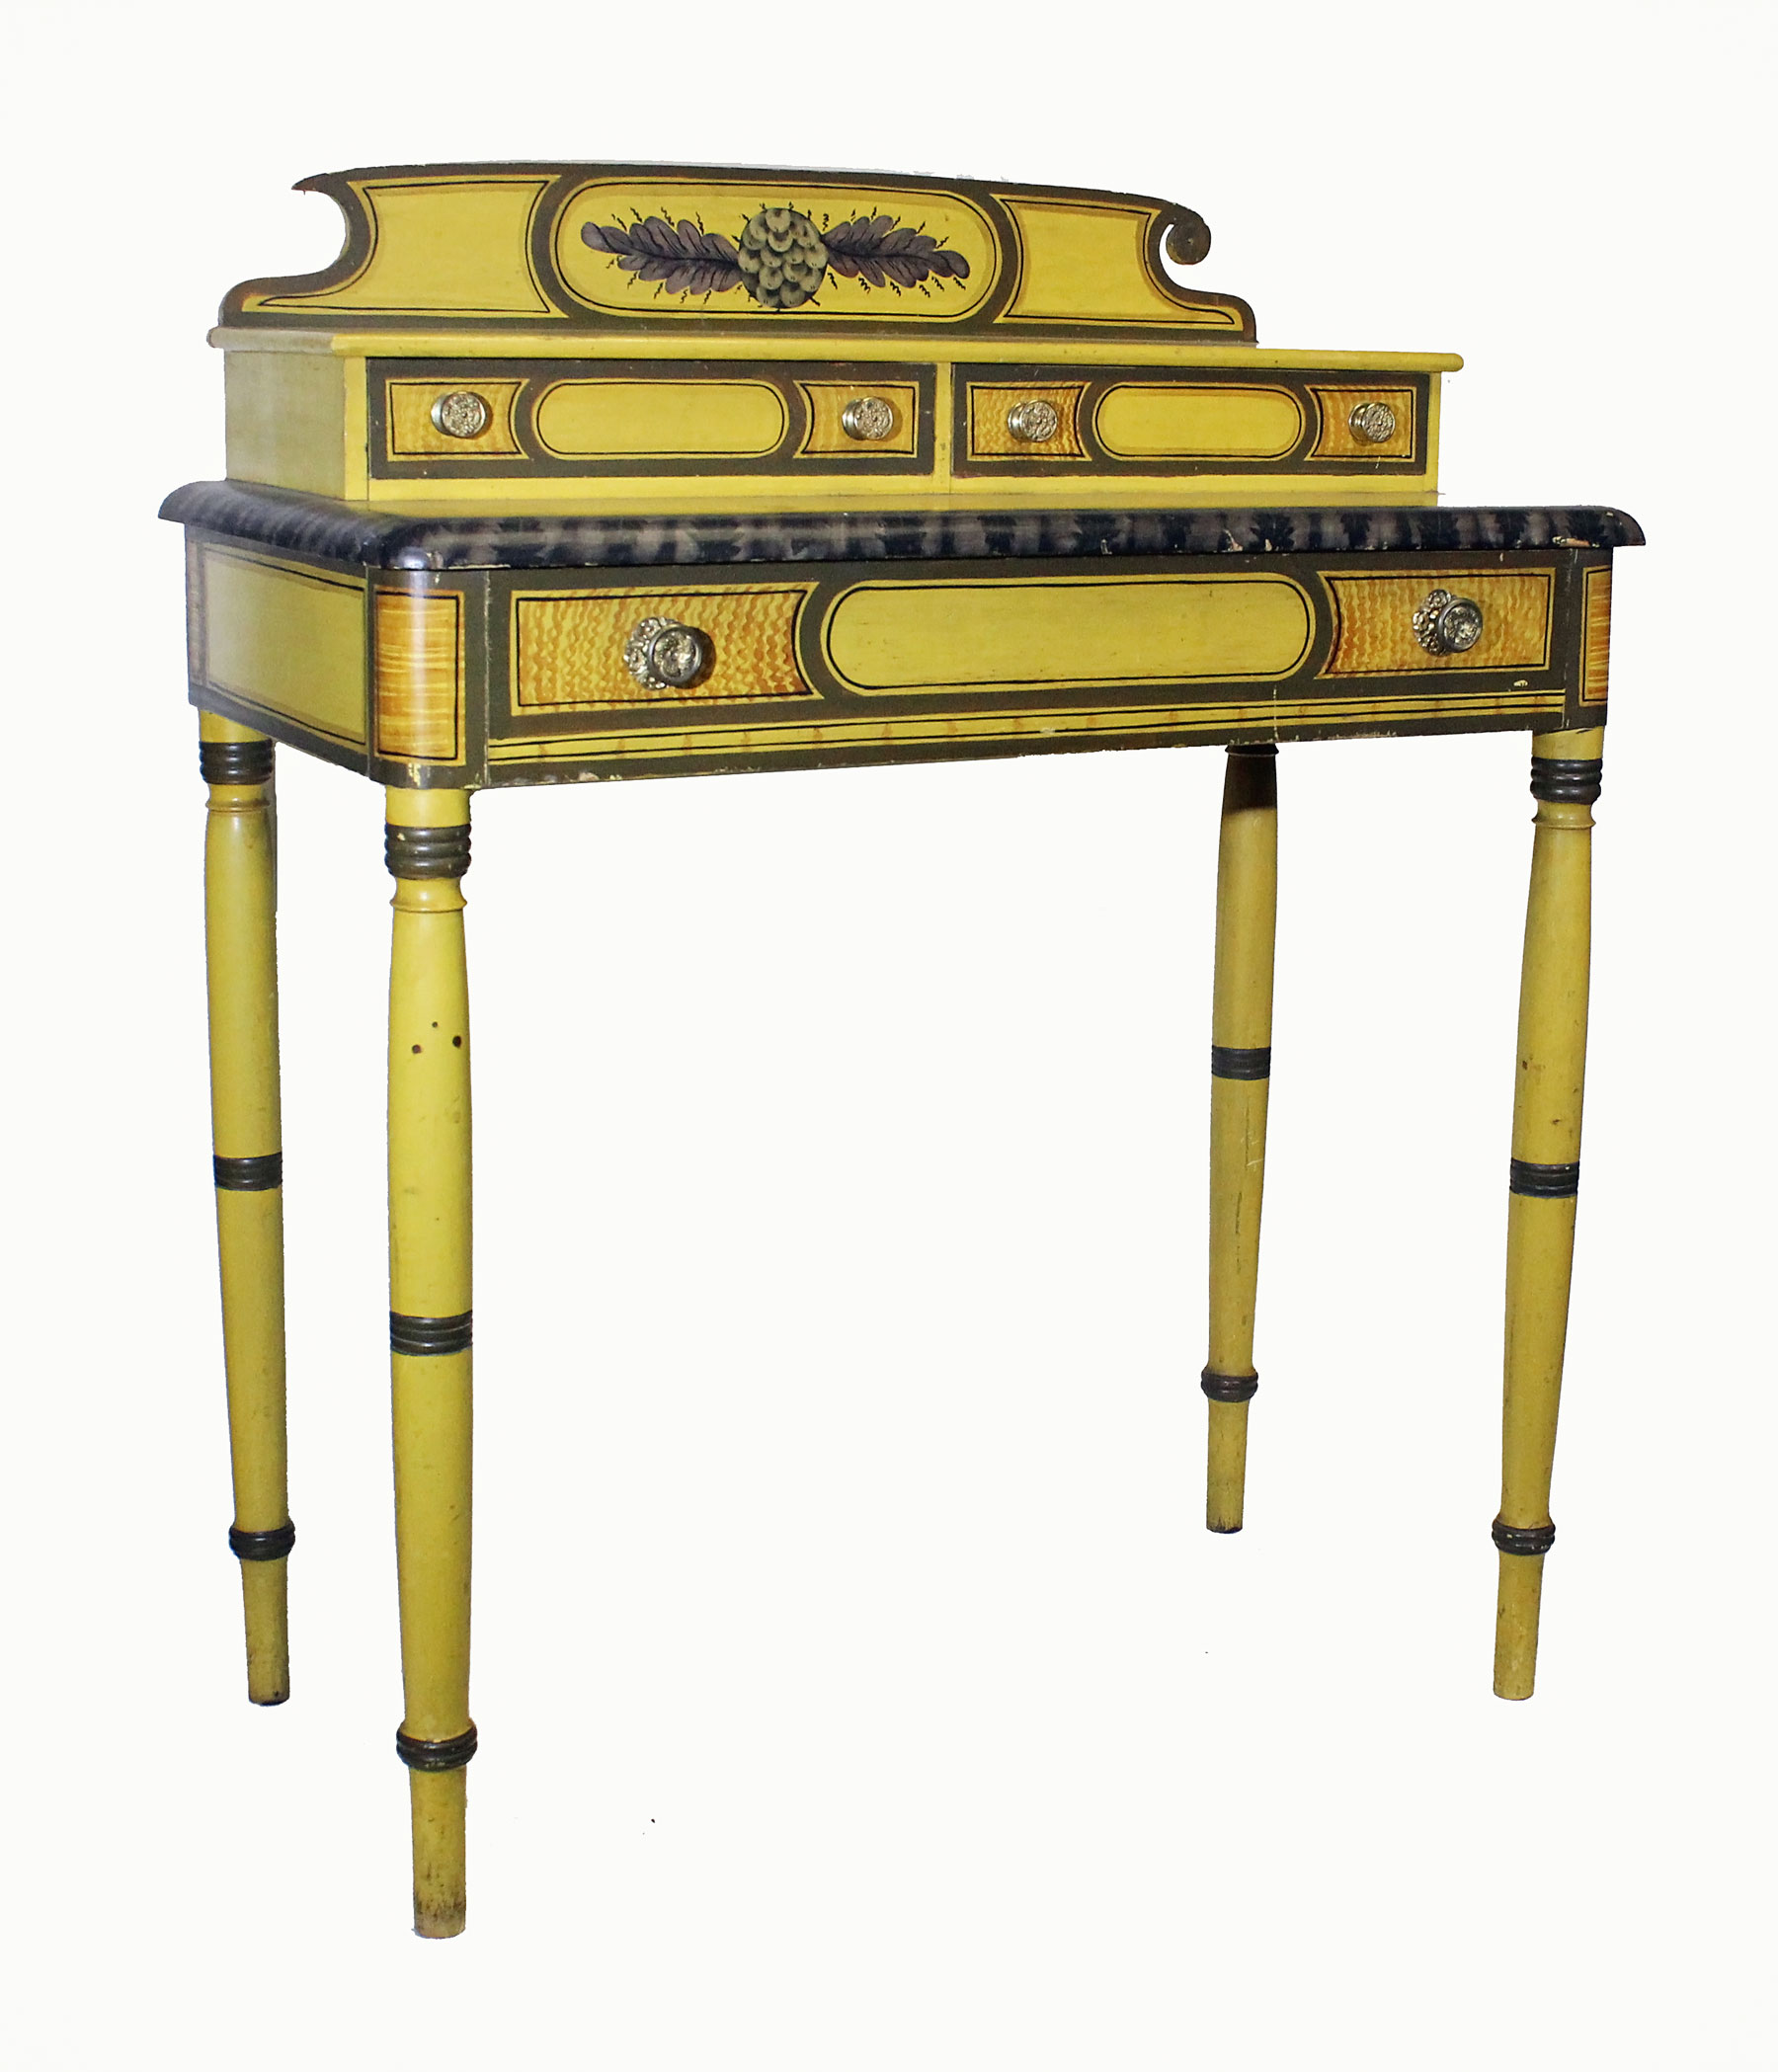 Dressing table, attributed to the Willard Harris shop (active 1808-1831)